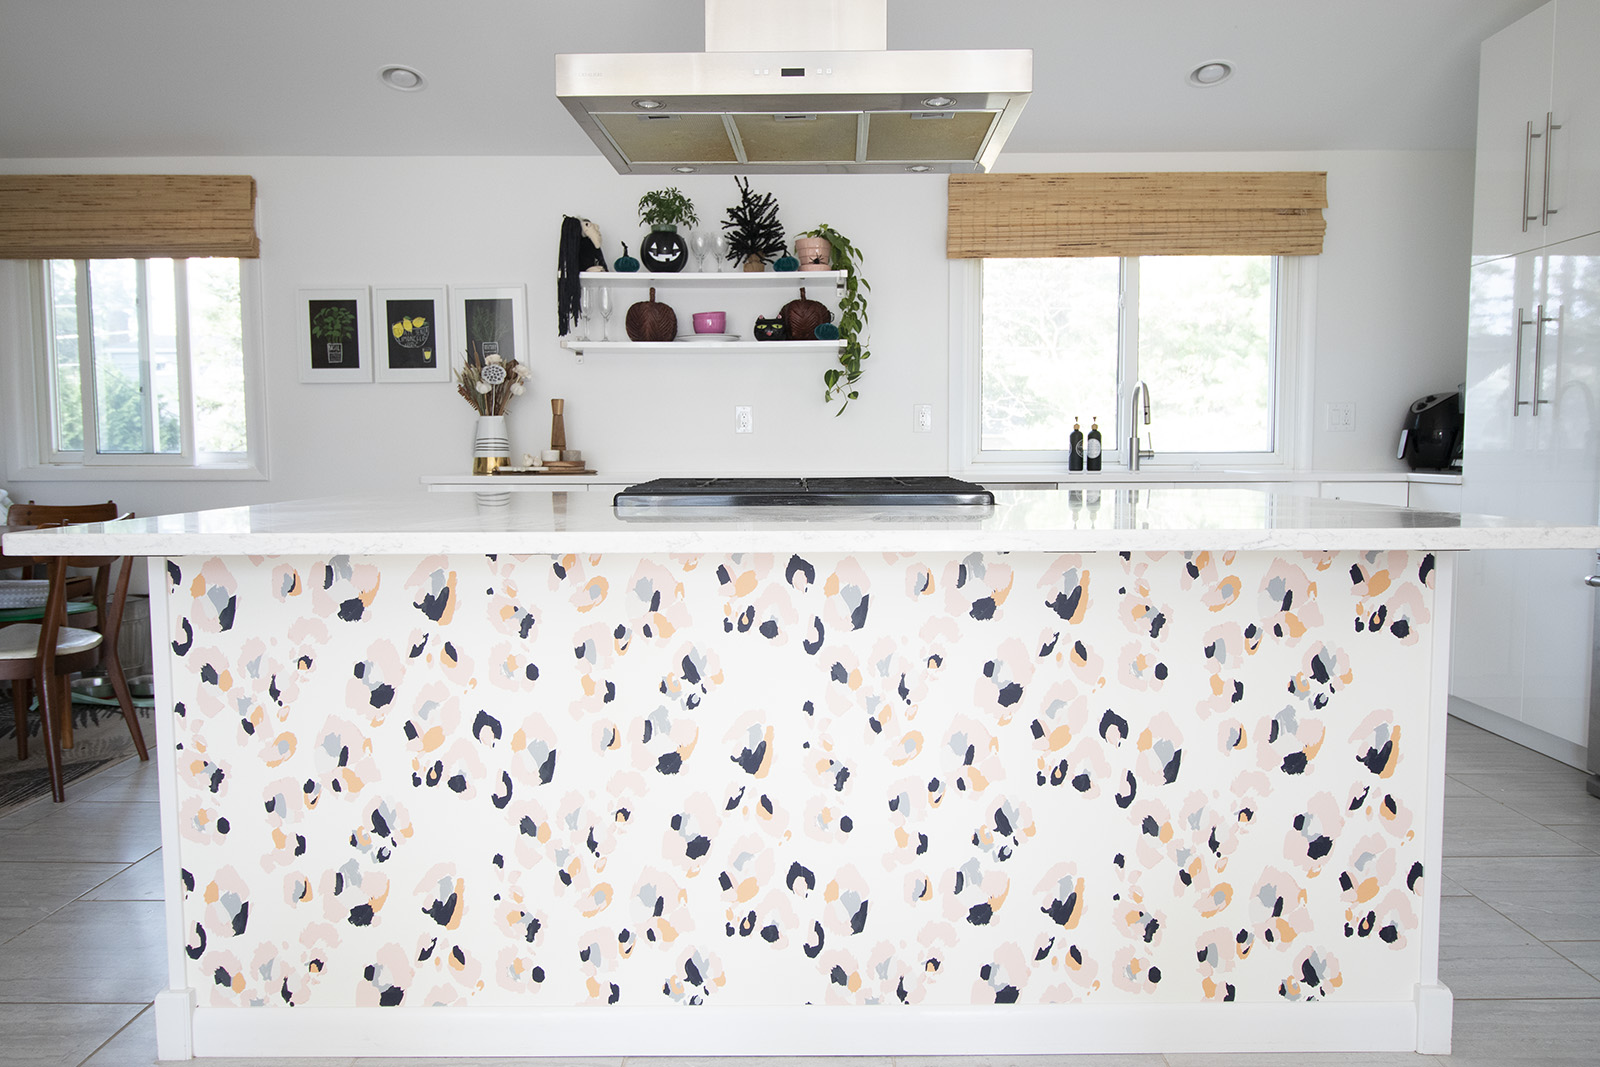 Wallpapering Our Kitchen Island Burritos And Bubbly